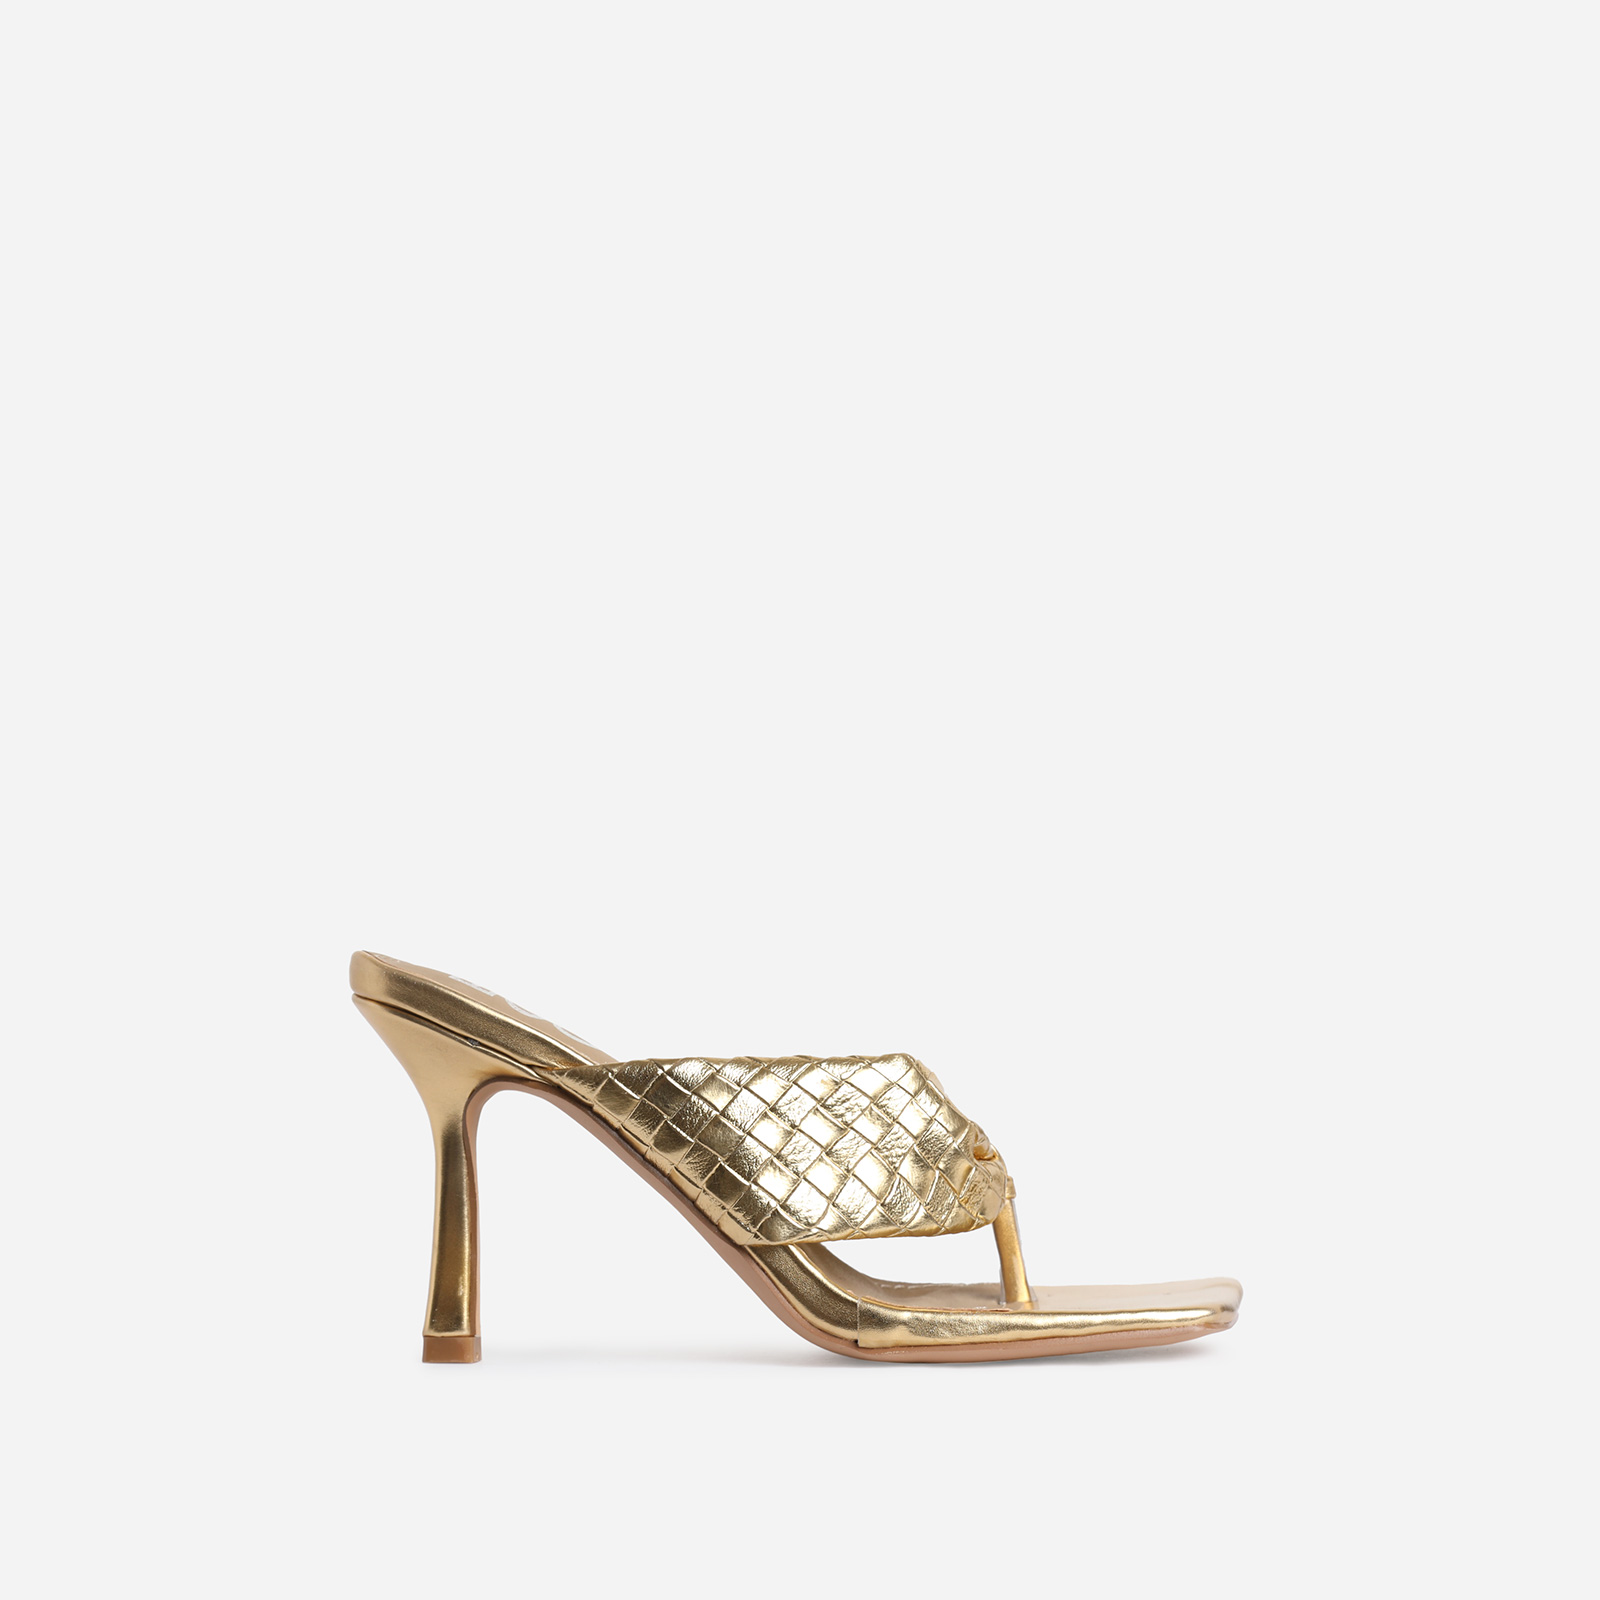 Brave Braided Detail Square Kitten Toe Heel Mule In Metallic Gold Faux Leather